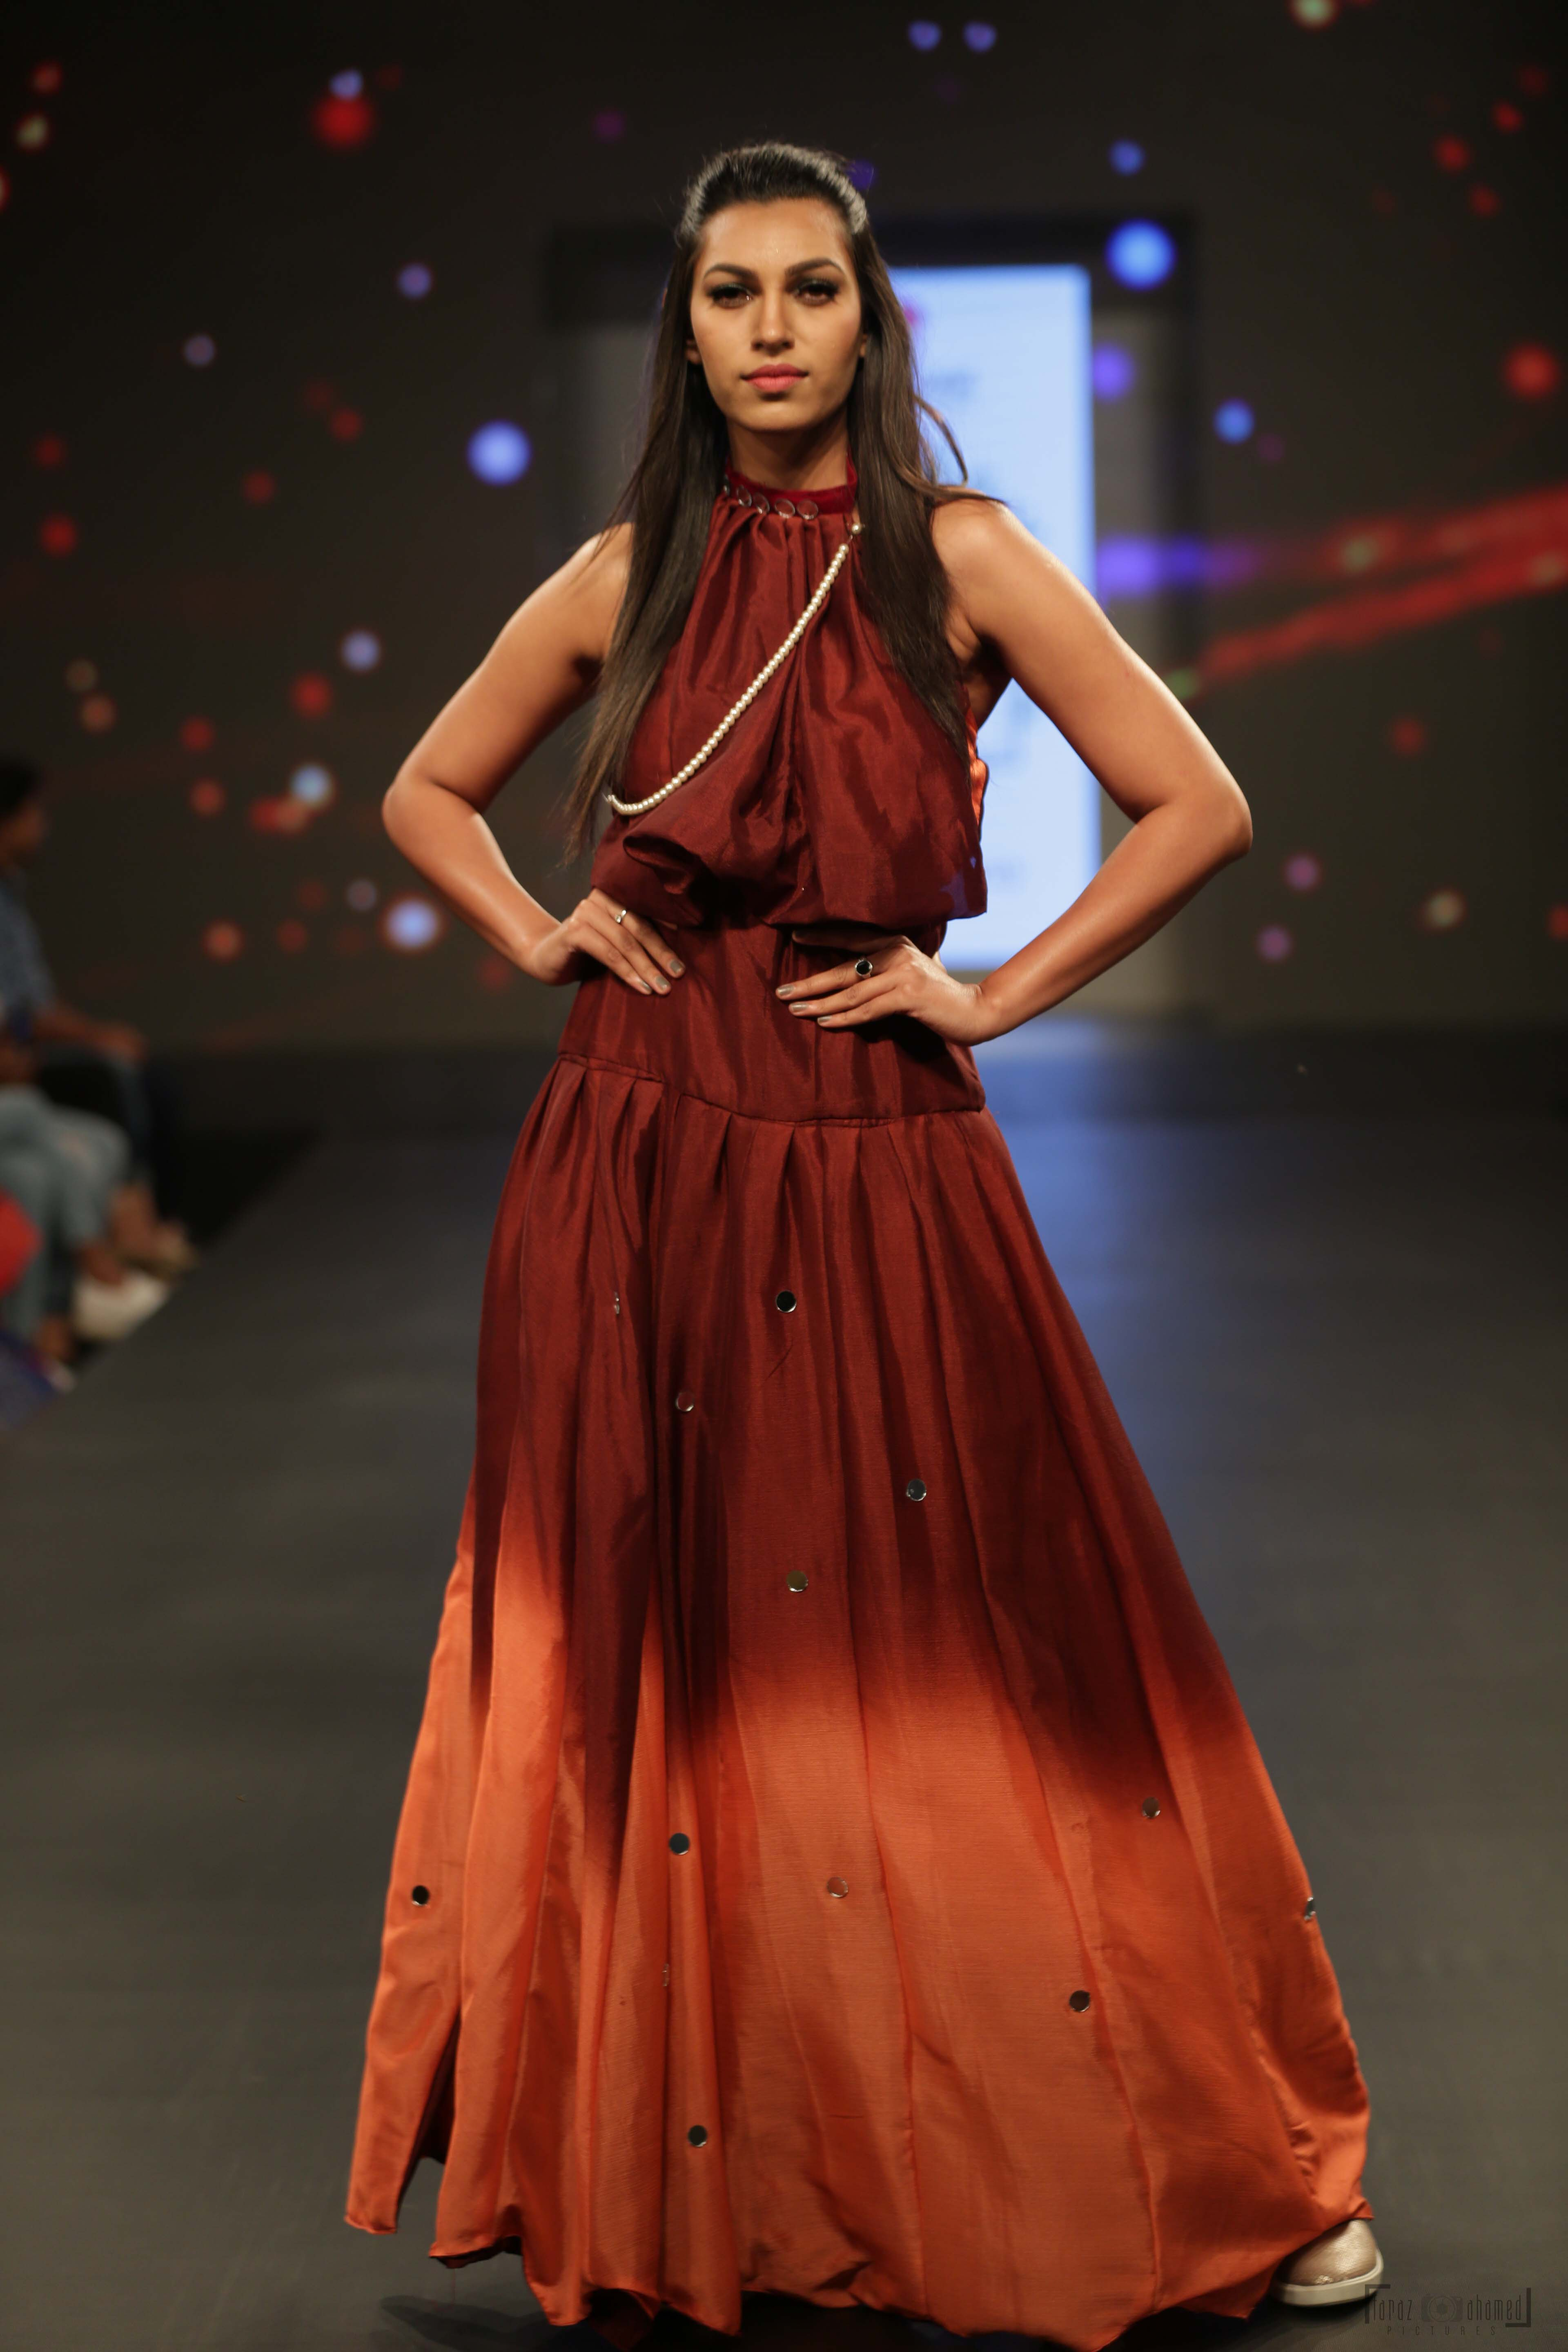 MODEL WALKED FOR DREAMZONE